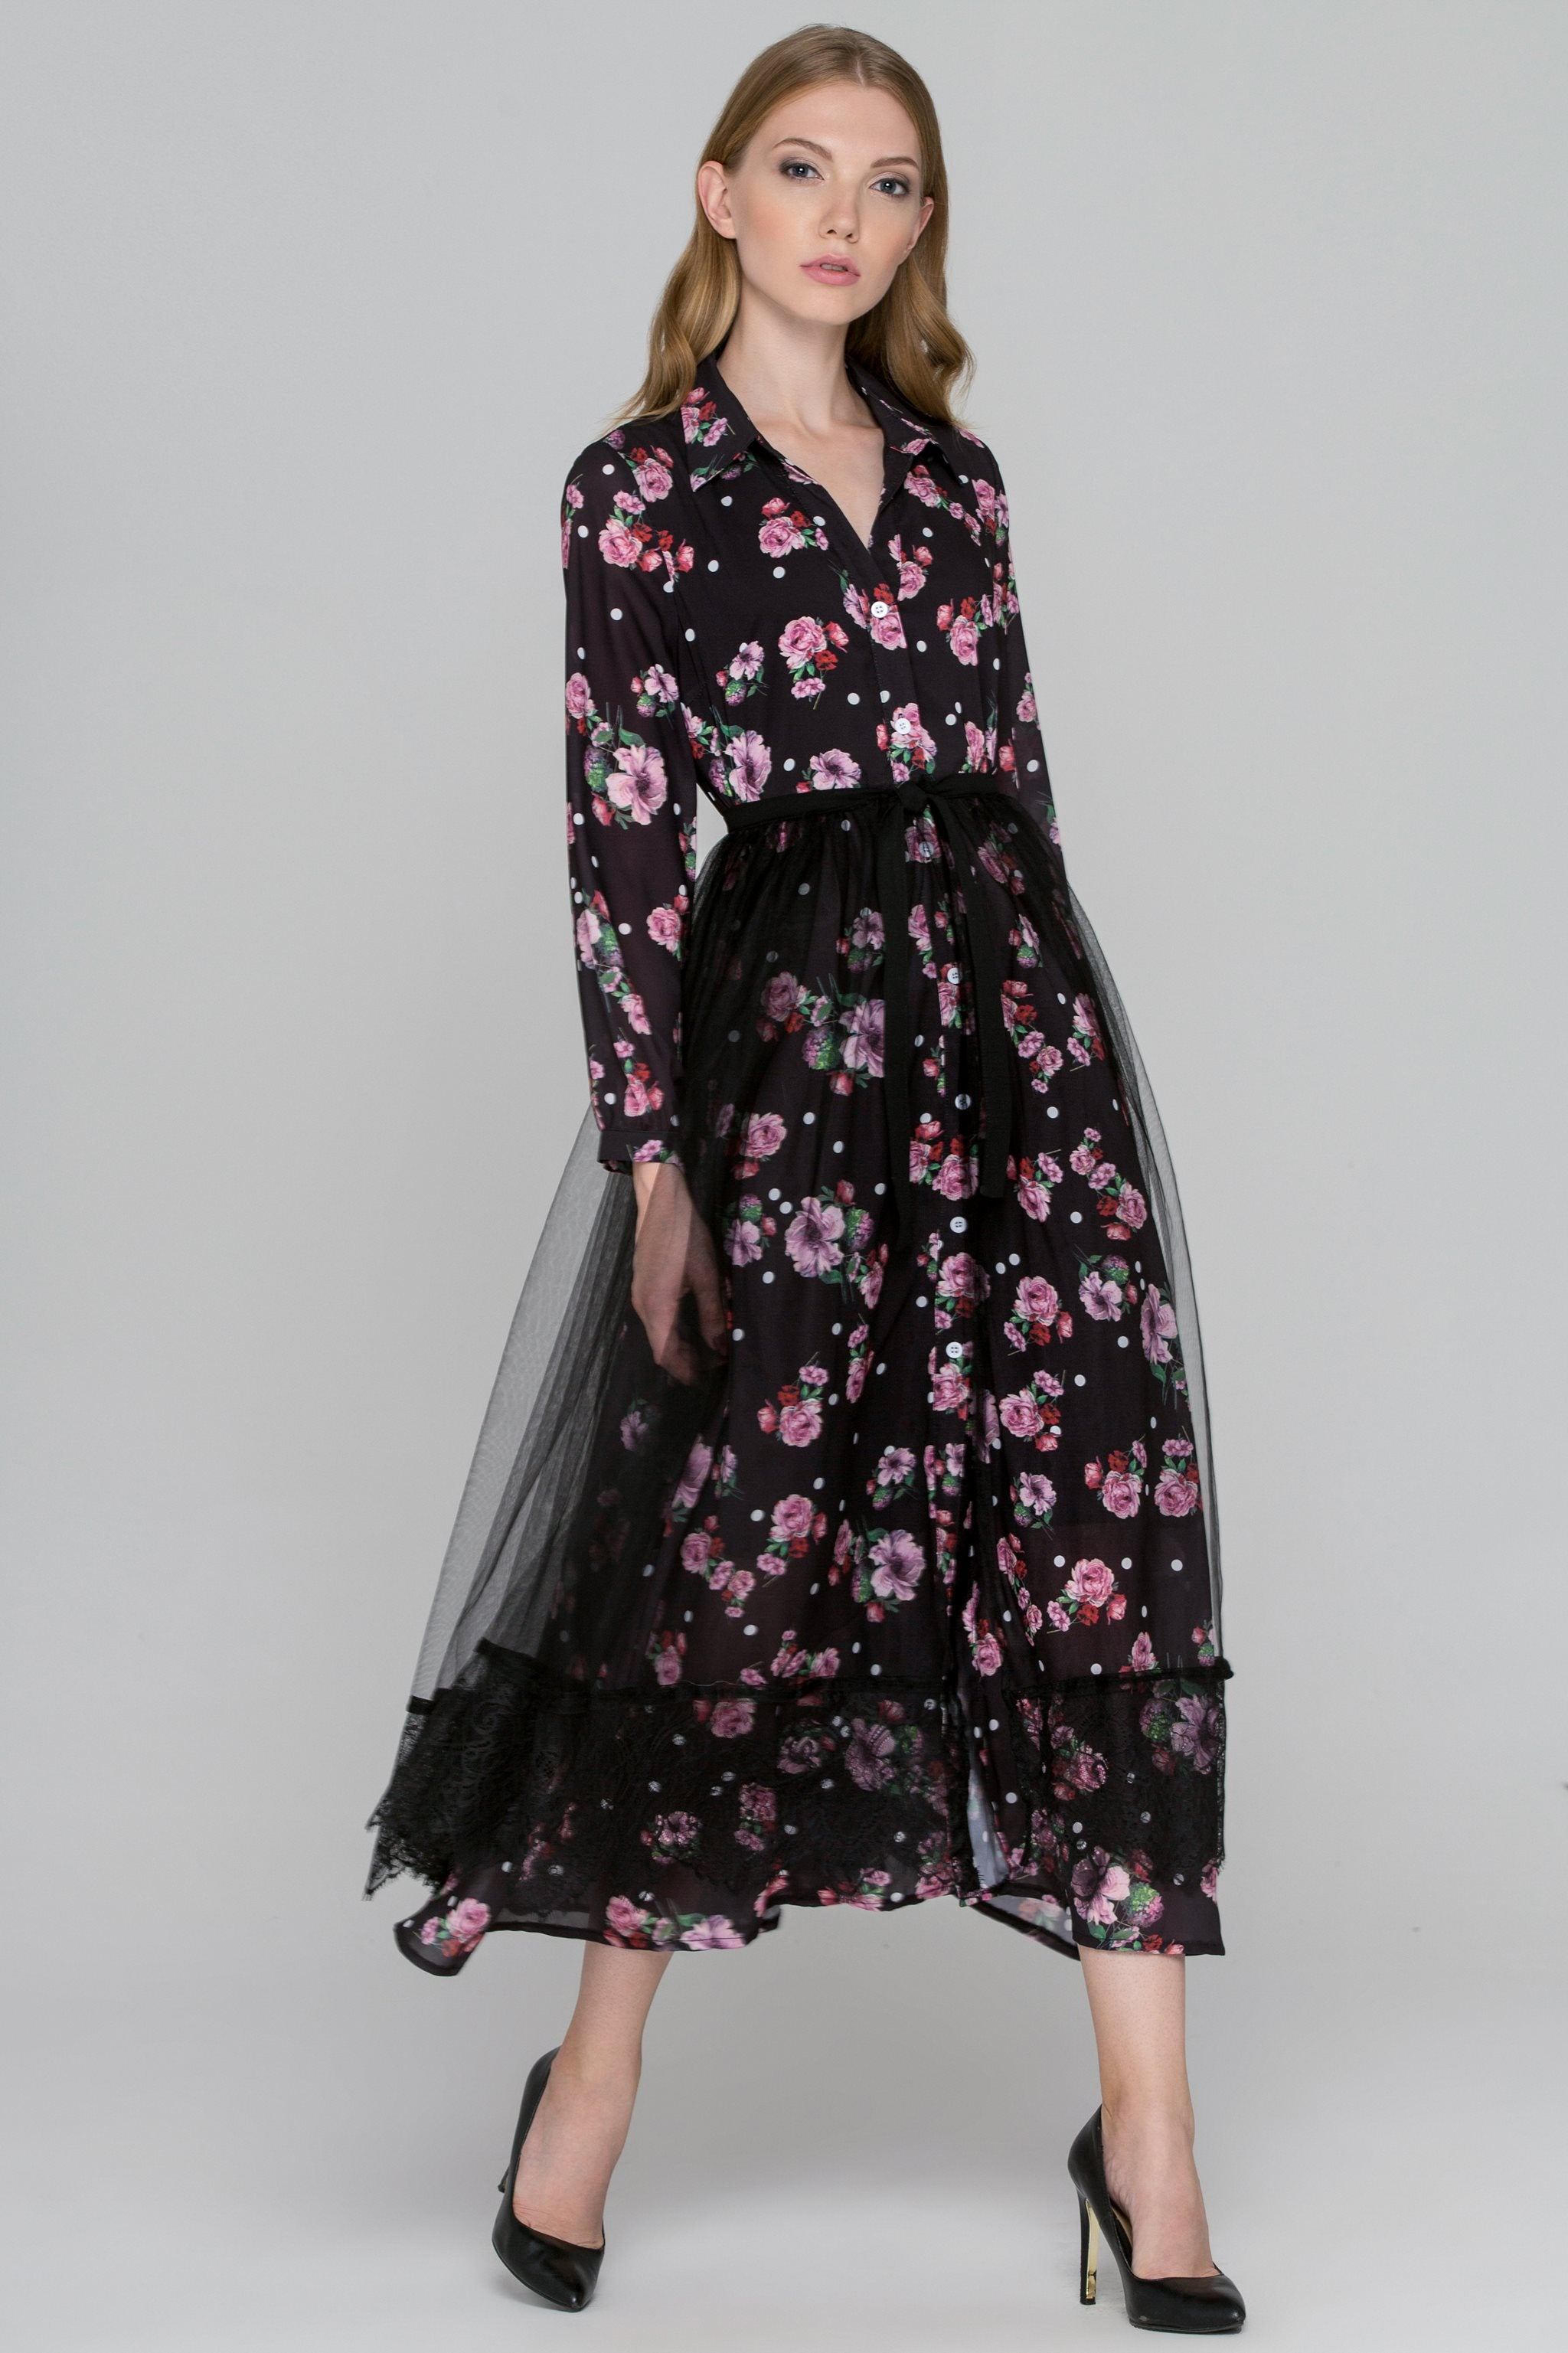 5b16e36053ea3 Black Floral Dots Tulle Layer Maxi Shirt Dress – OwnTheLooks